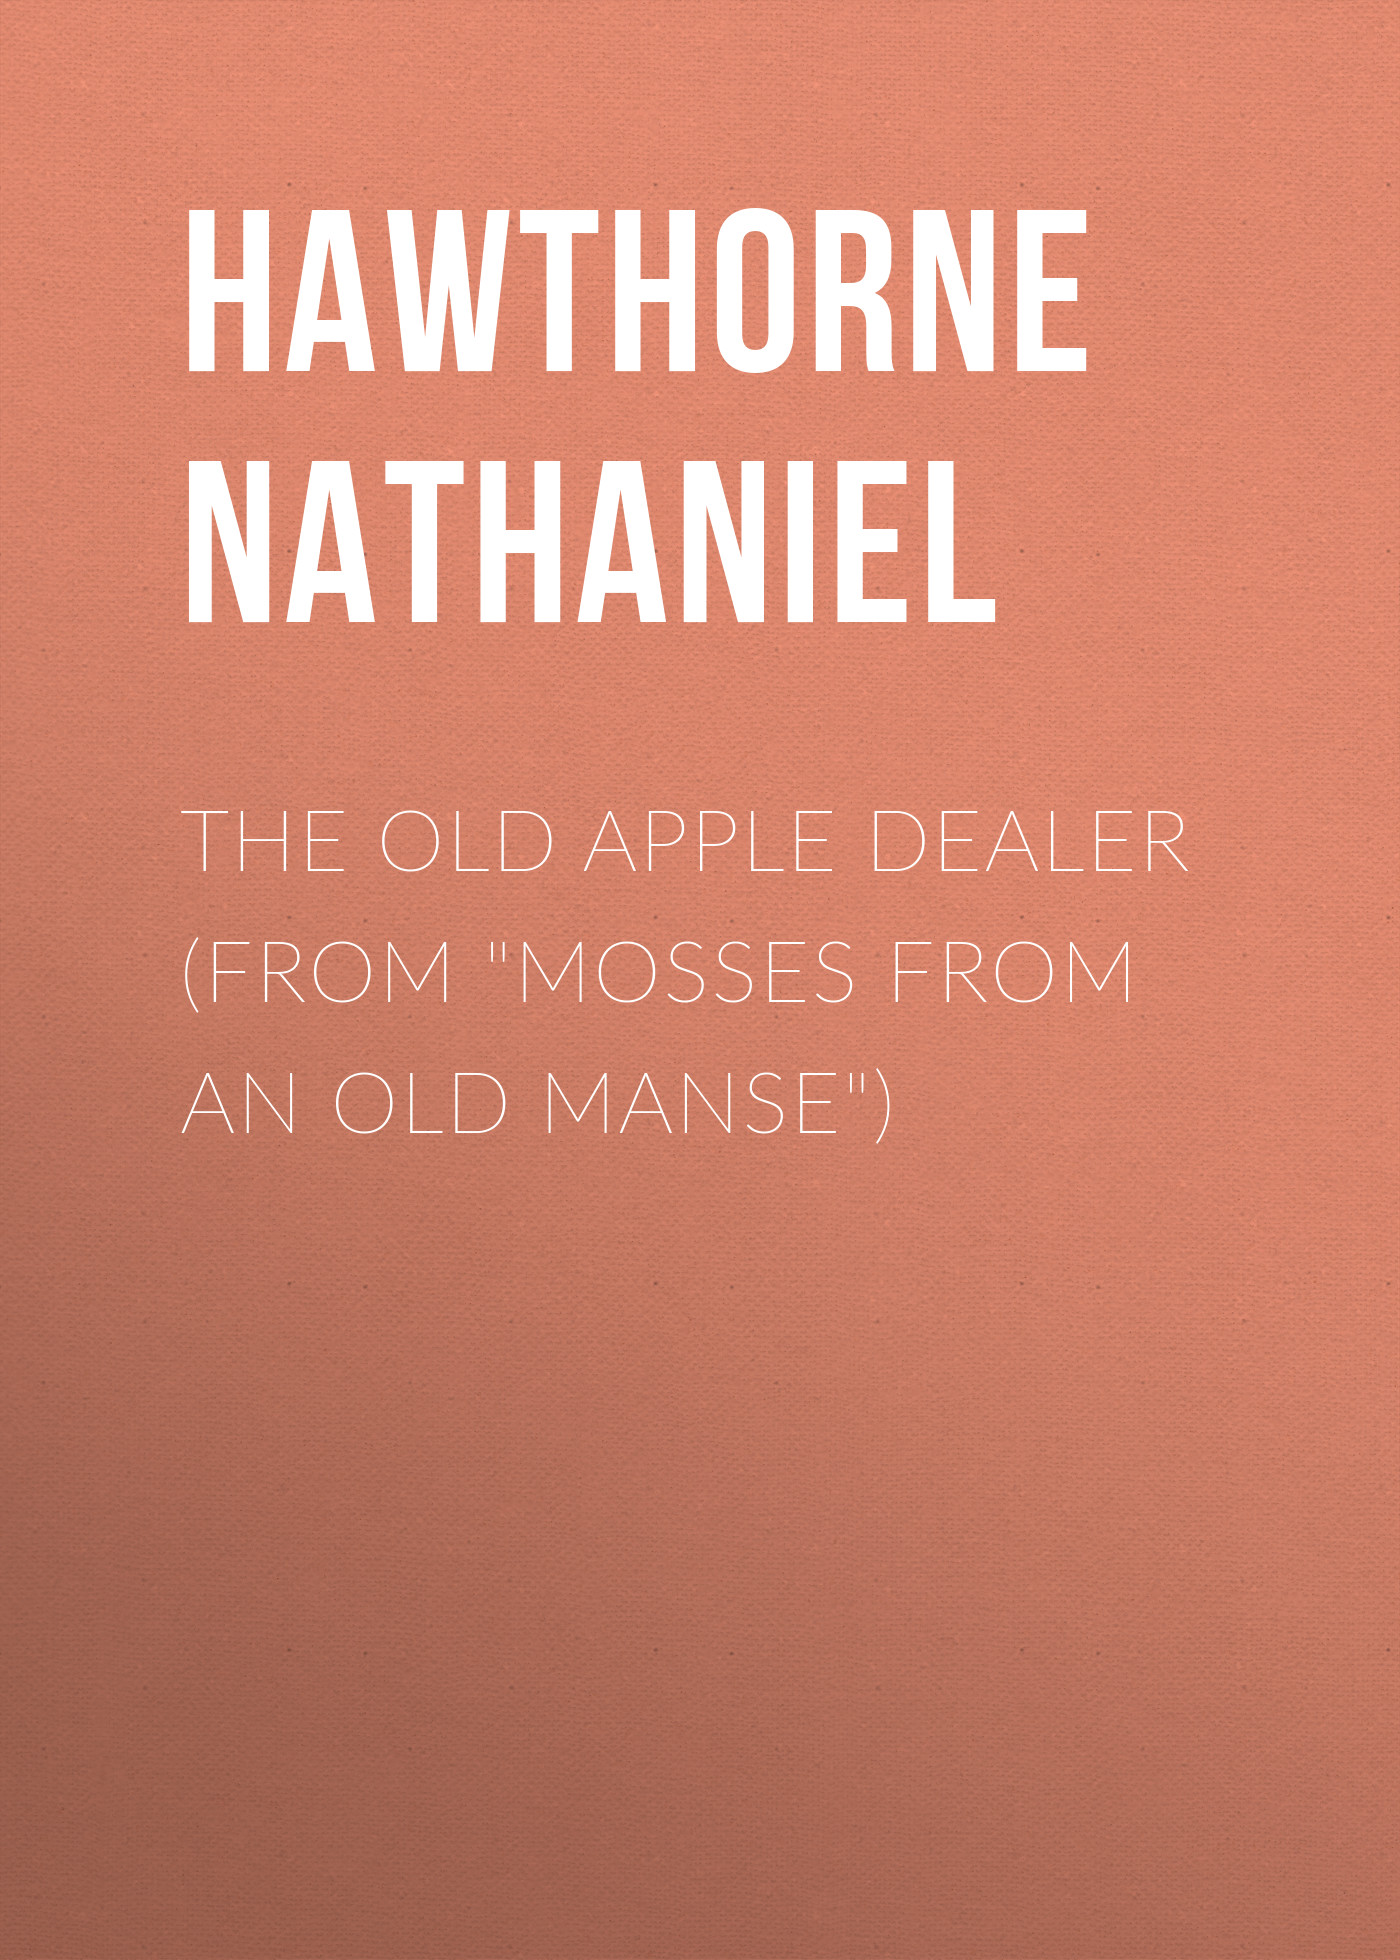 Hawthorne Nathaniel The Old Apple Dealer (From Mosses from an Old Manse) hawthorne nathaniel the hall of fantasy from mosses from an old manse